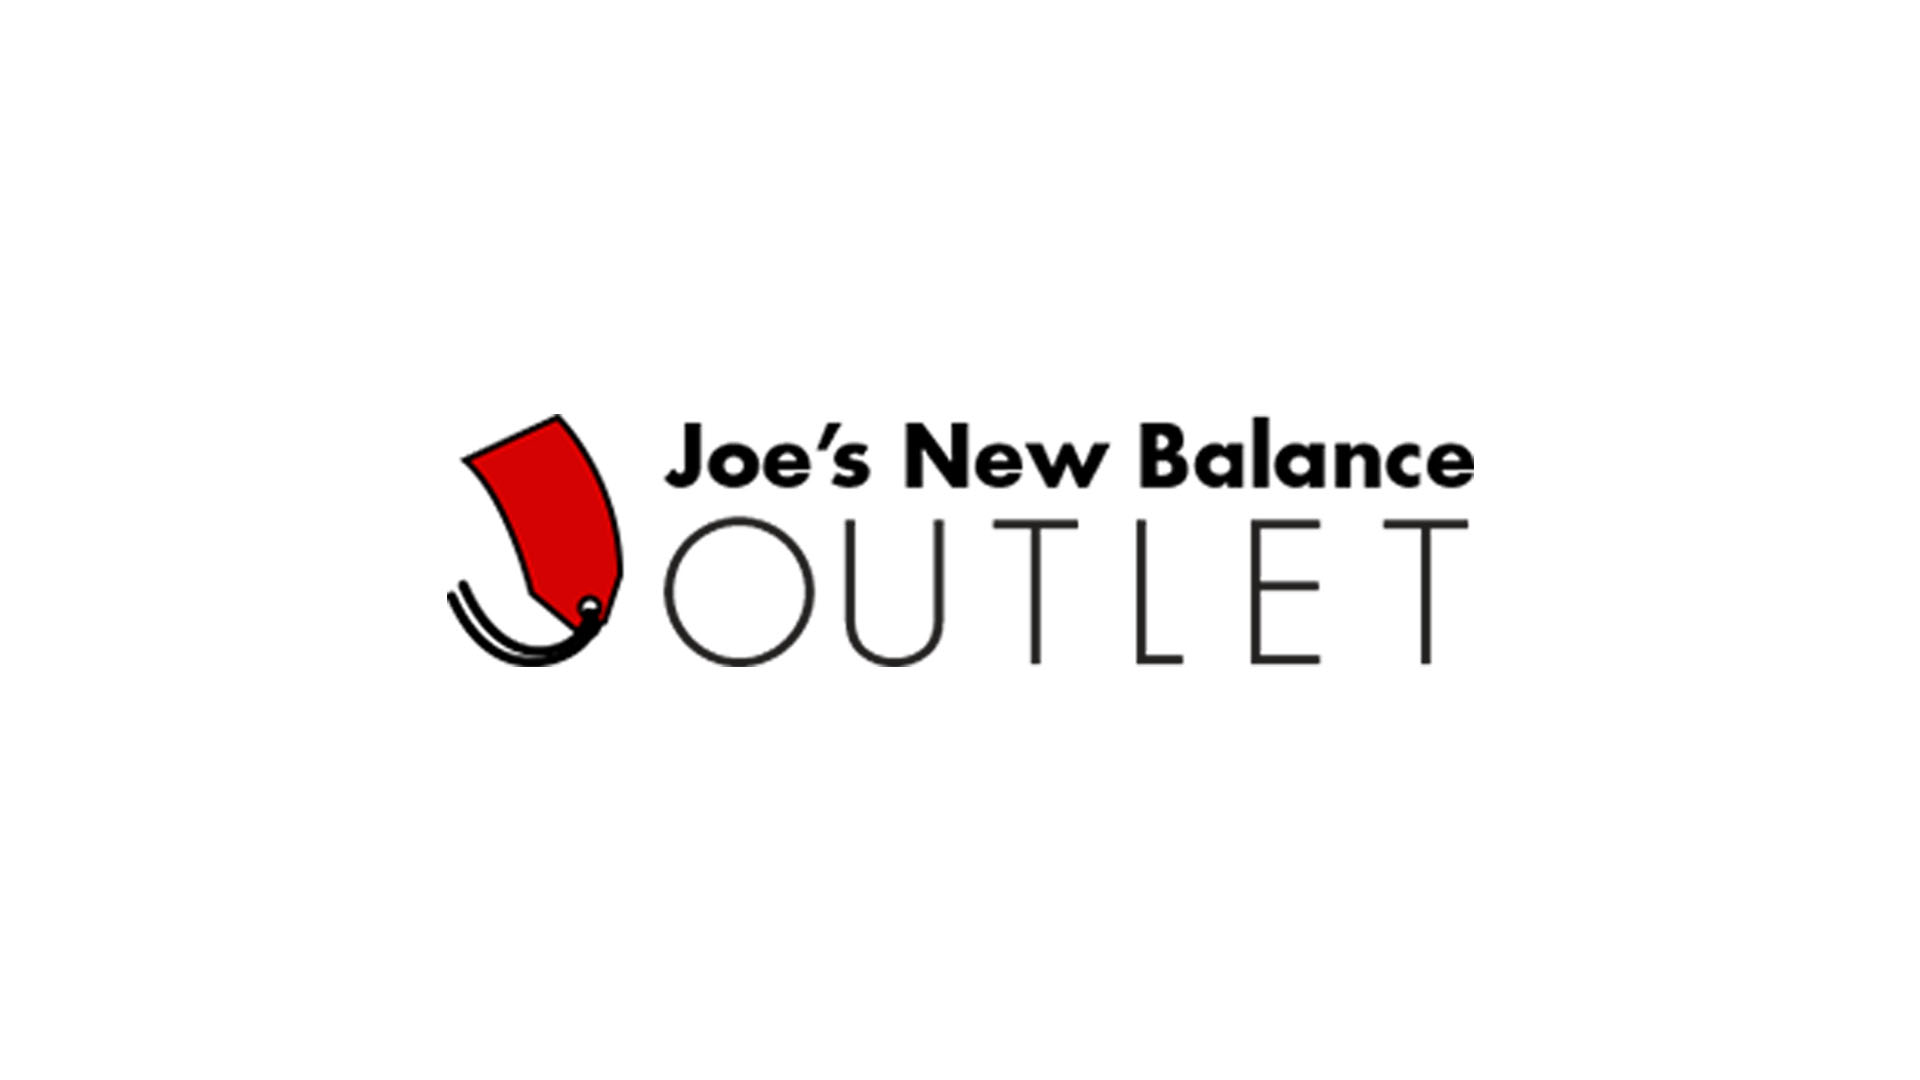 Joes's New Balance Outlet Father's Day Coupons